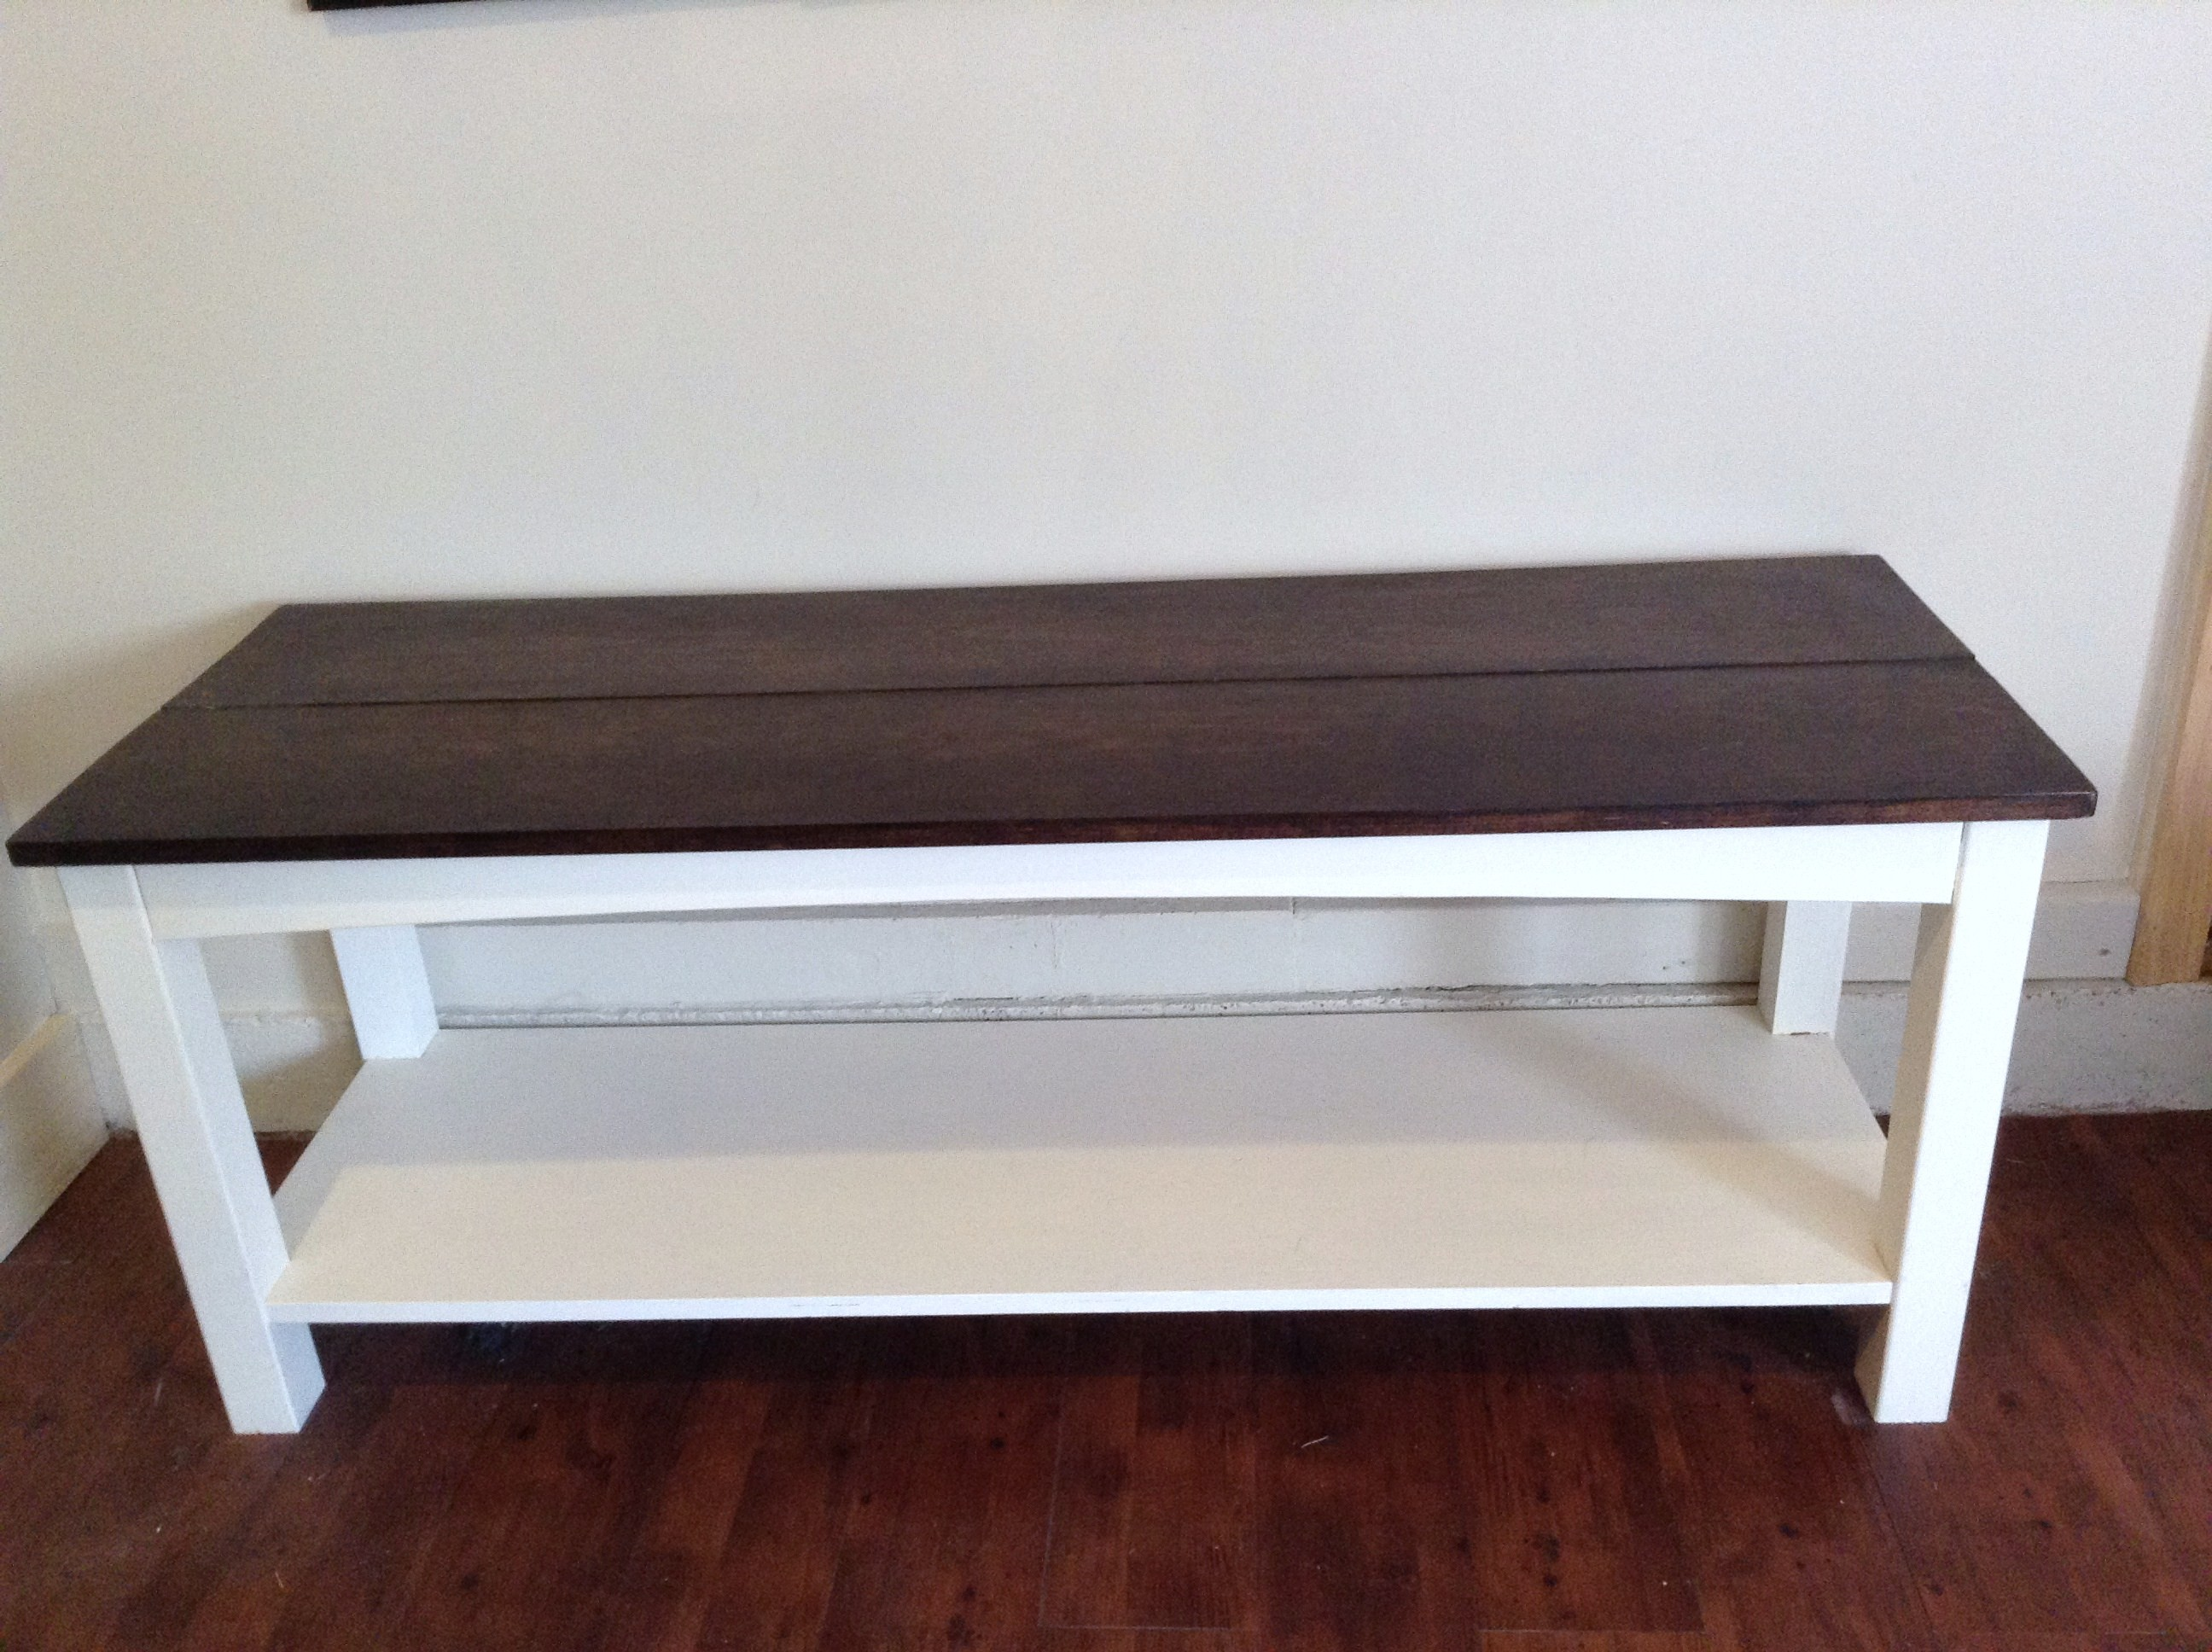 Used sofa Table Cool Transforming An Ugly sofa Table Into A Functional Bench the Decoration